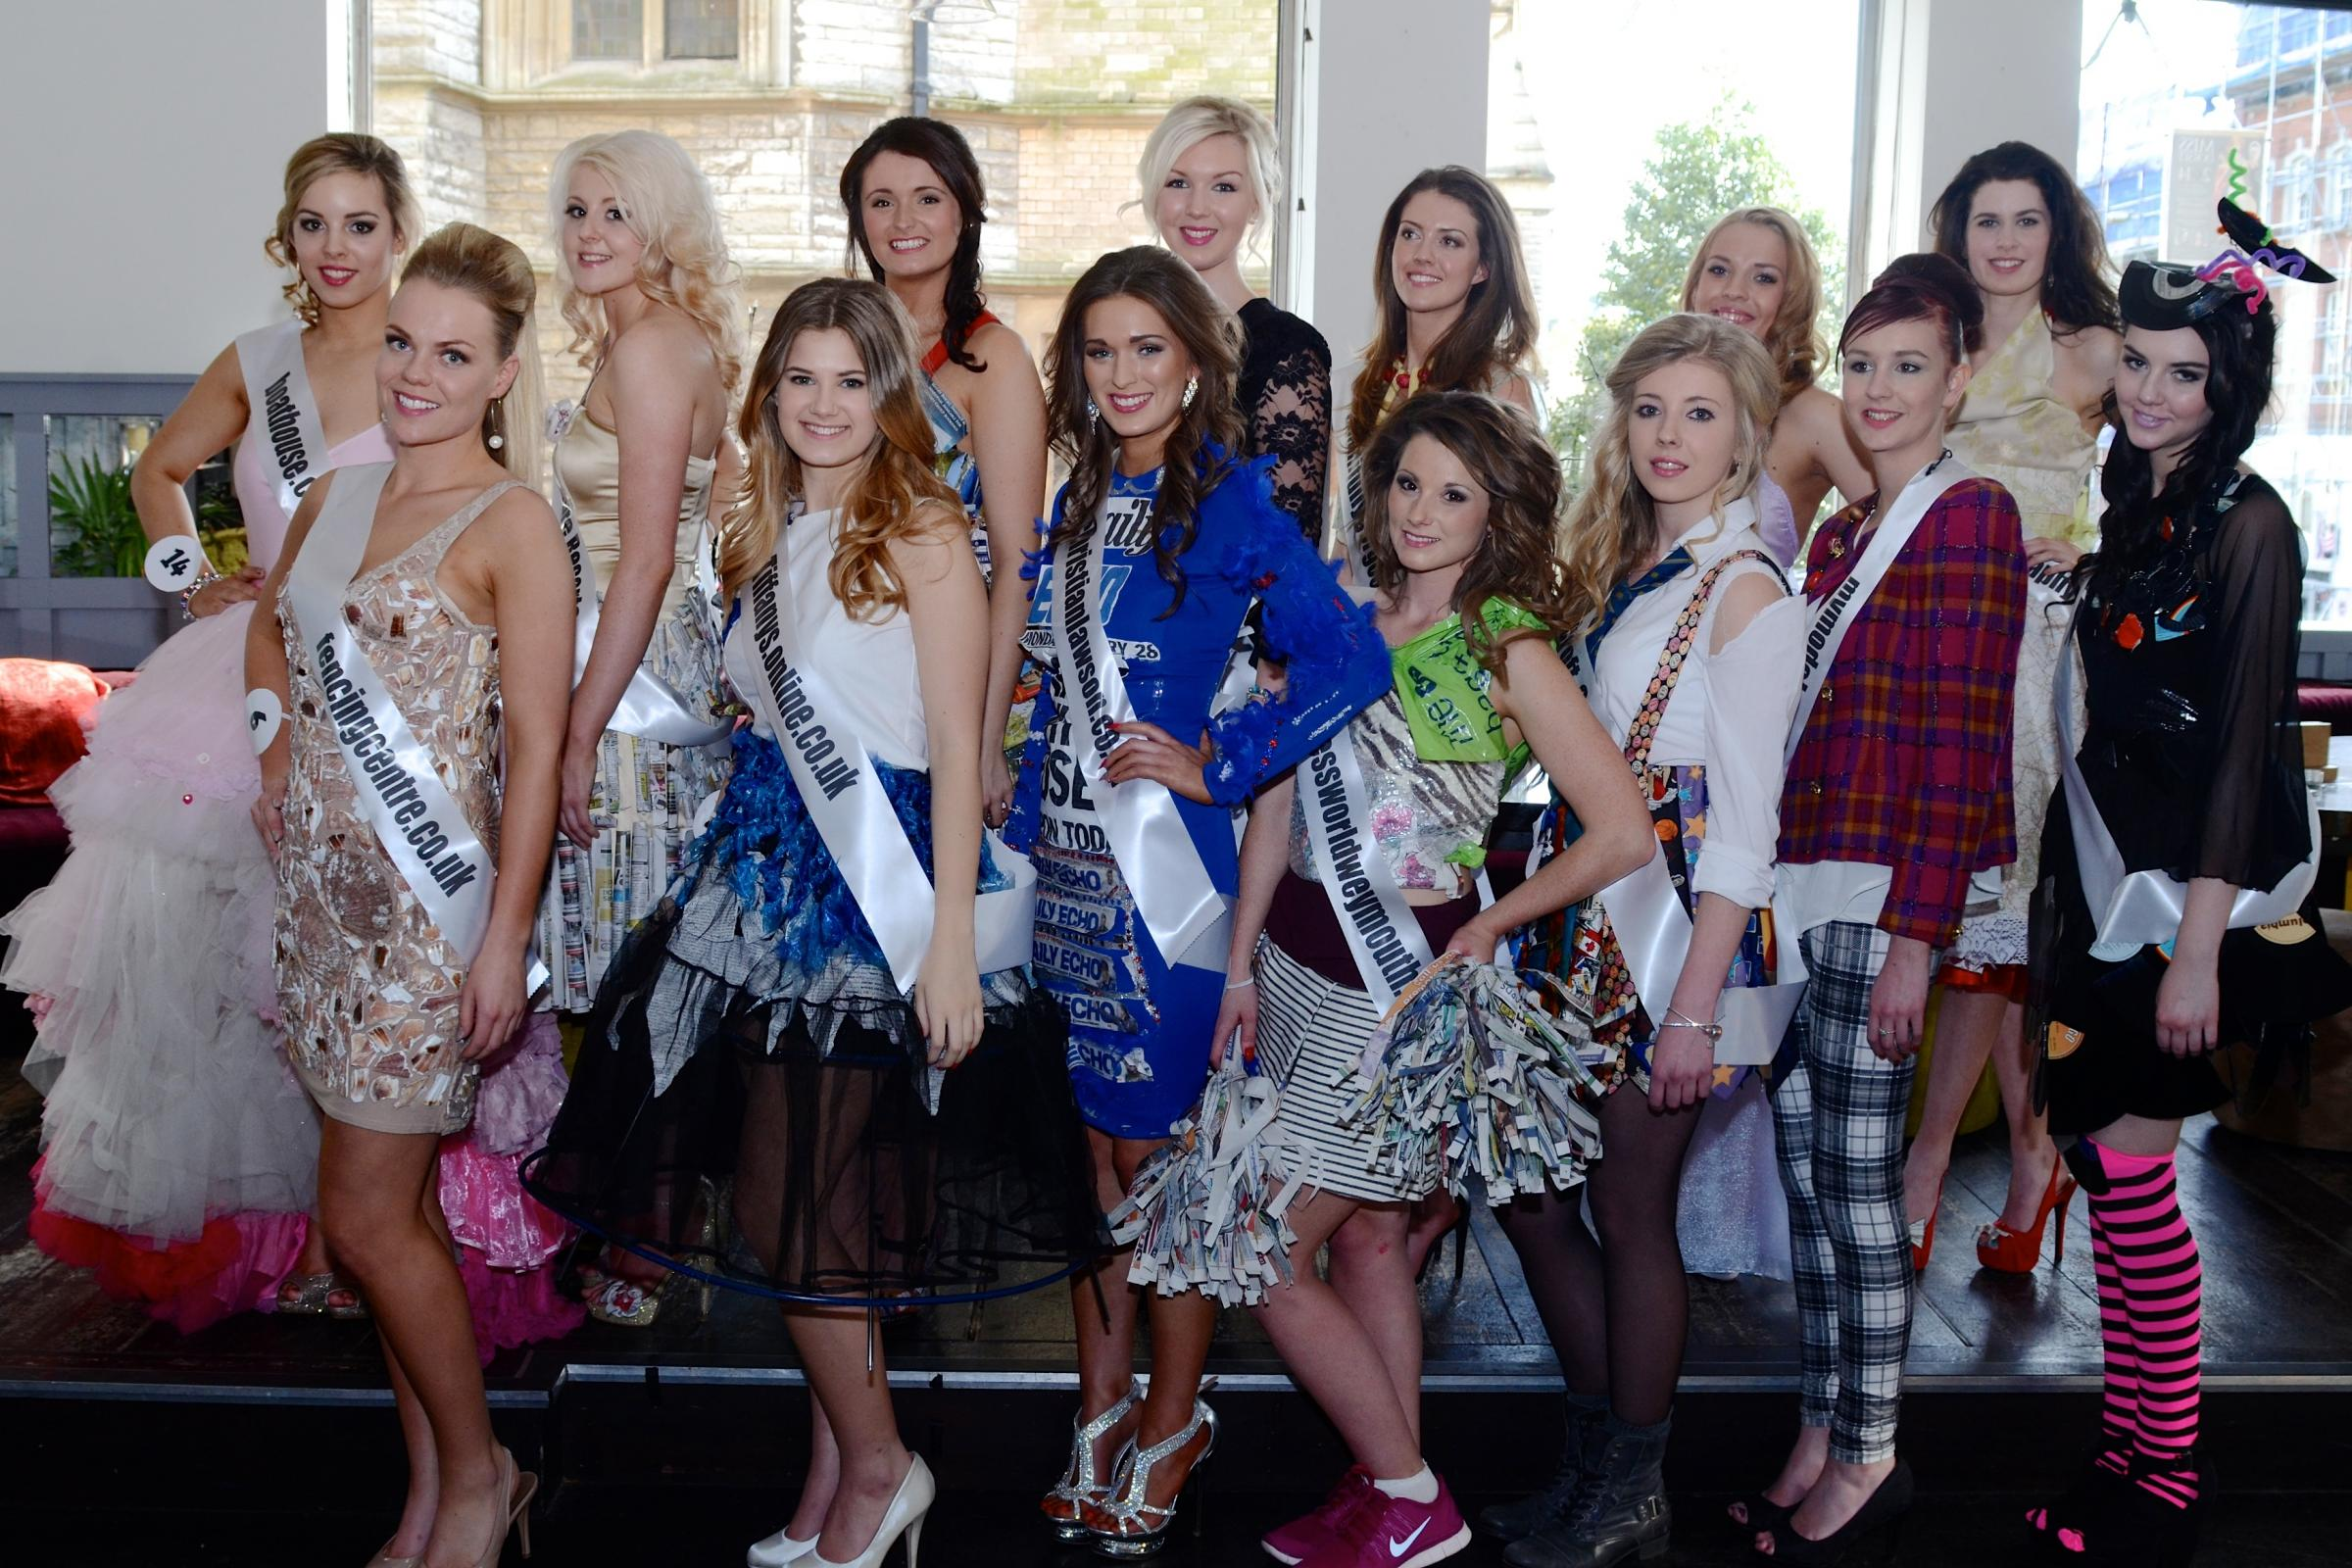 Miss Dorset 2014 crowned